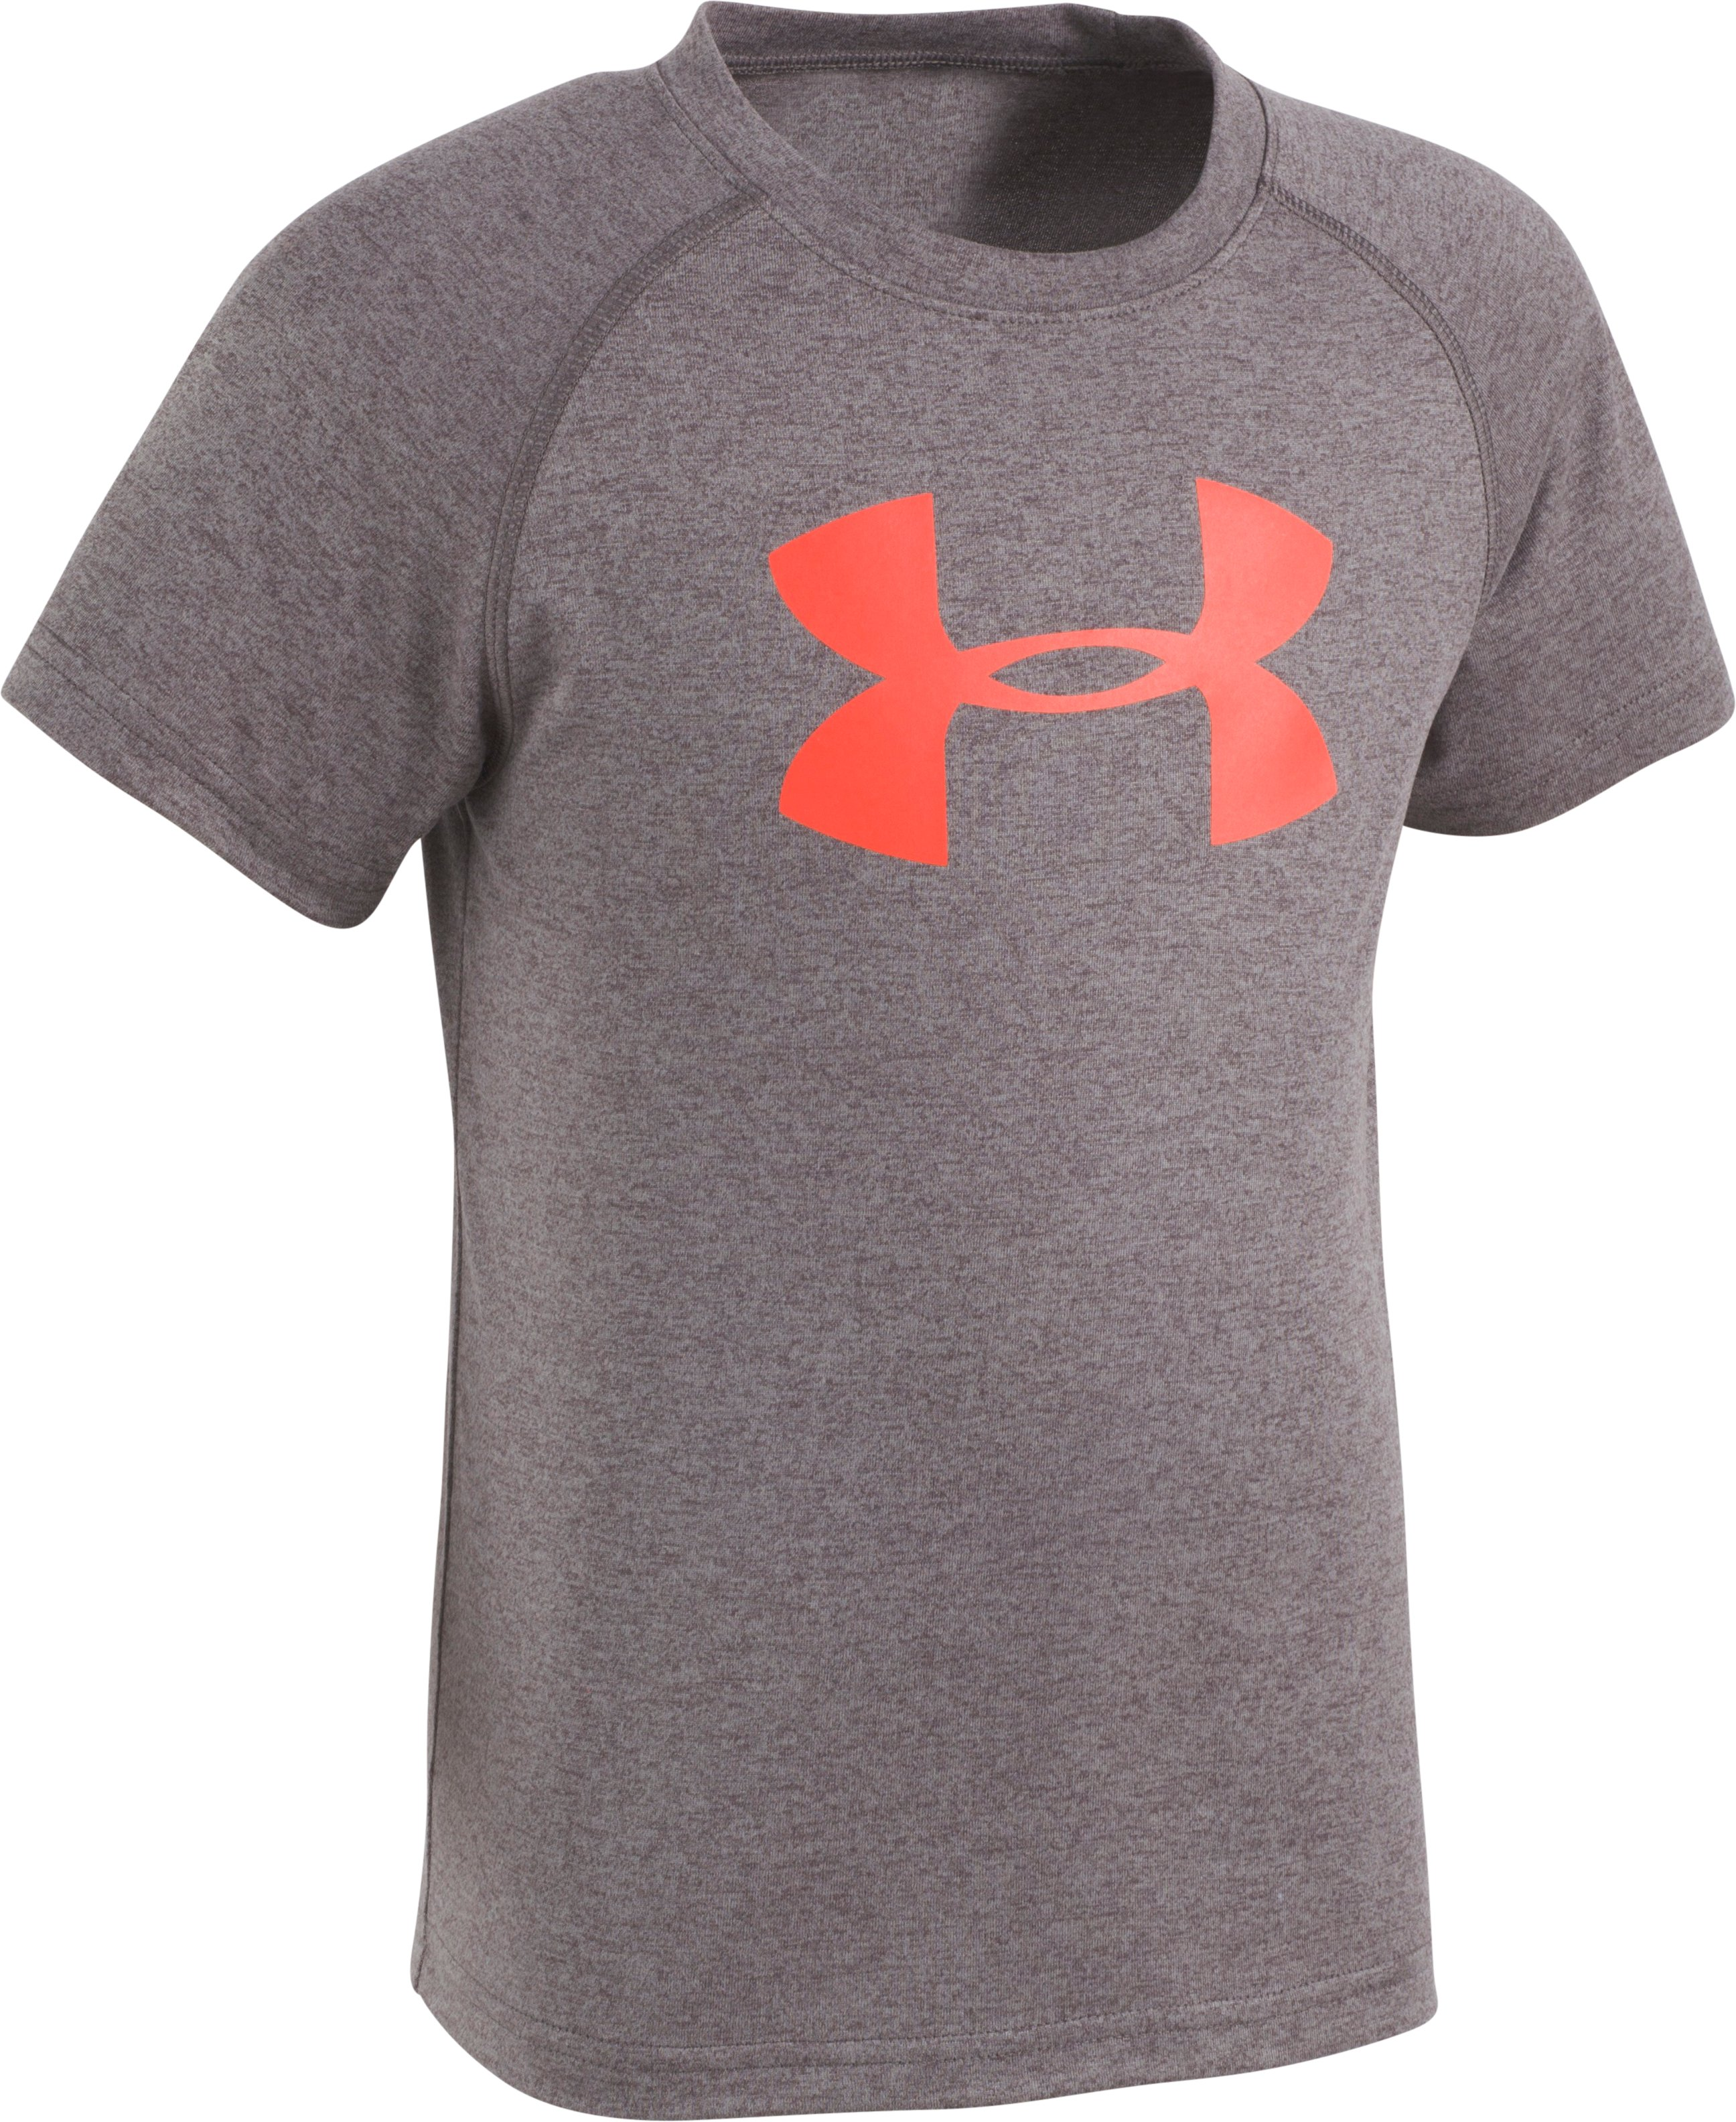 Boys' Pre-School UA Big Logo T-Shirt, Carbon Heather, zoomed image